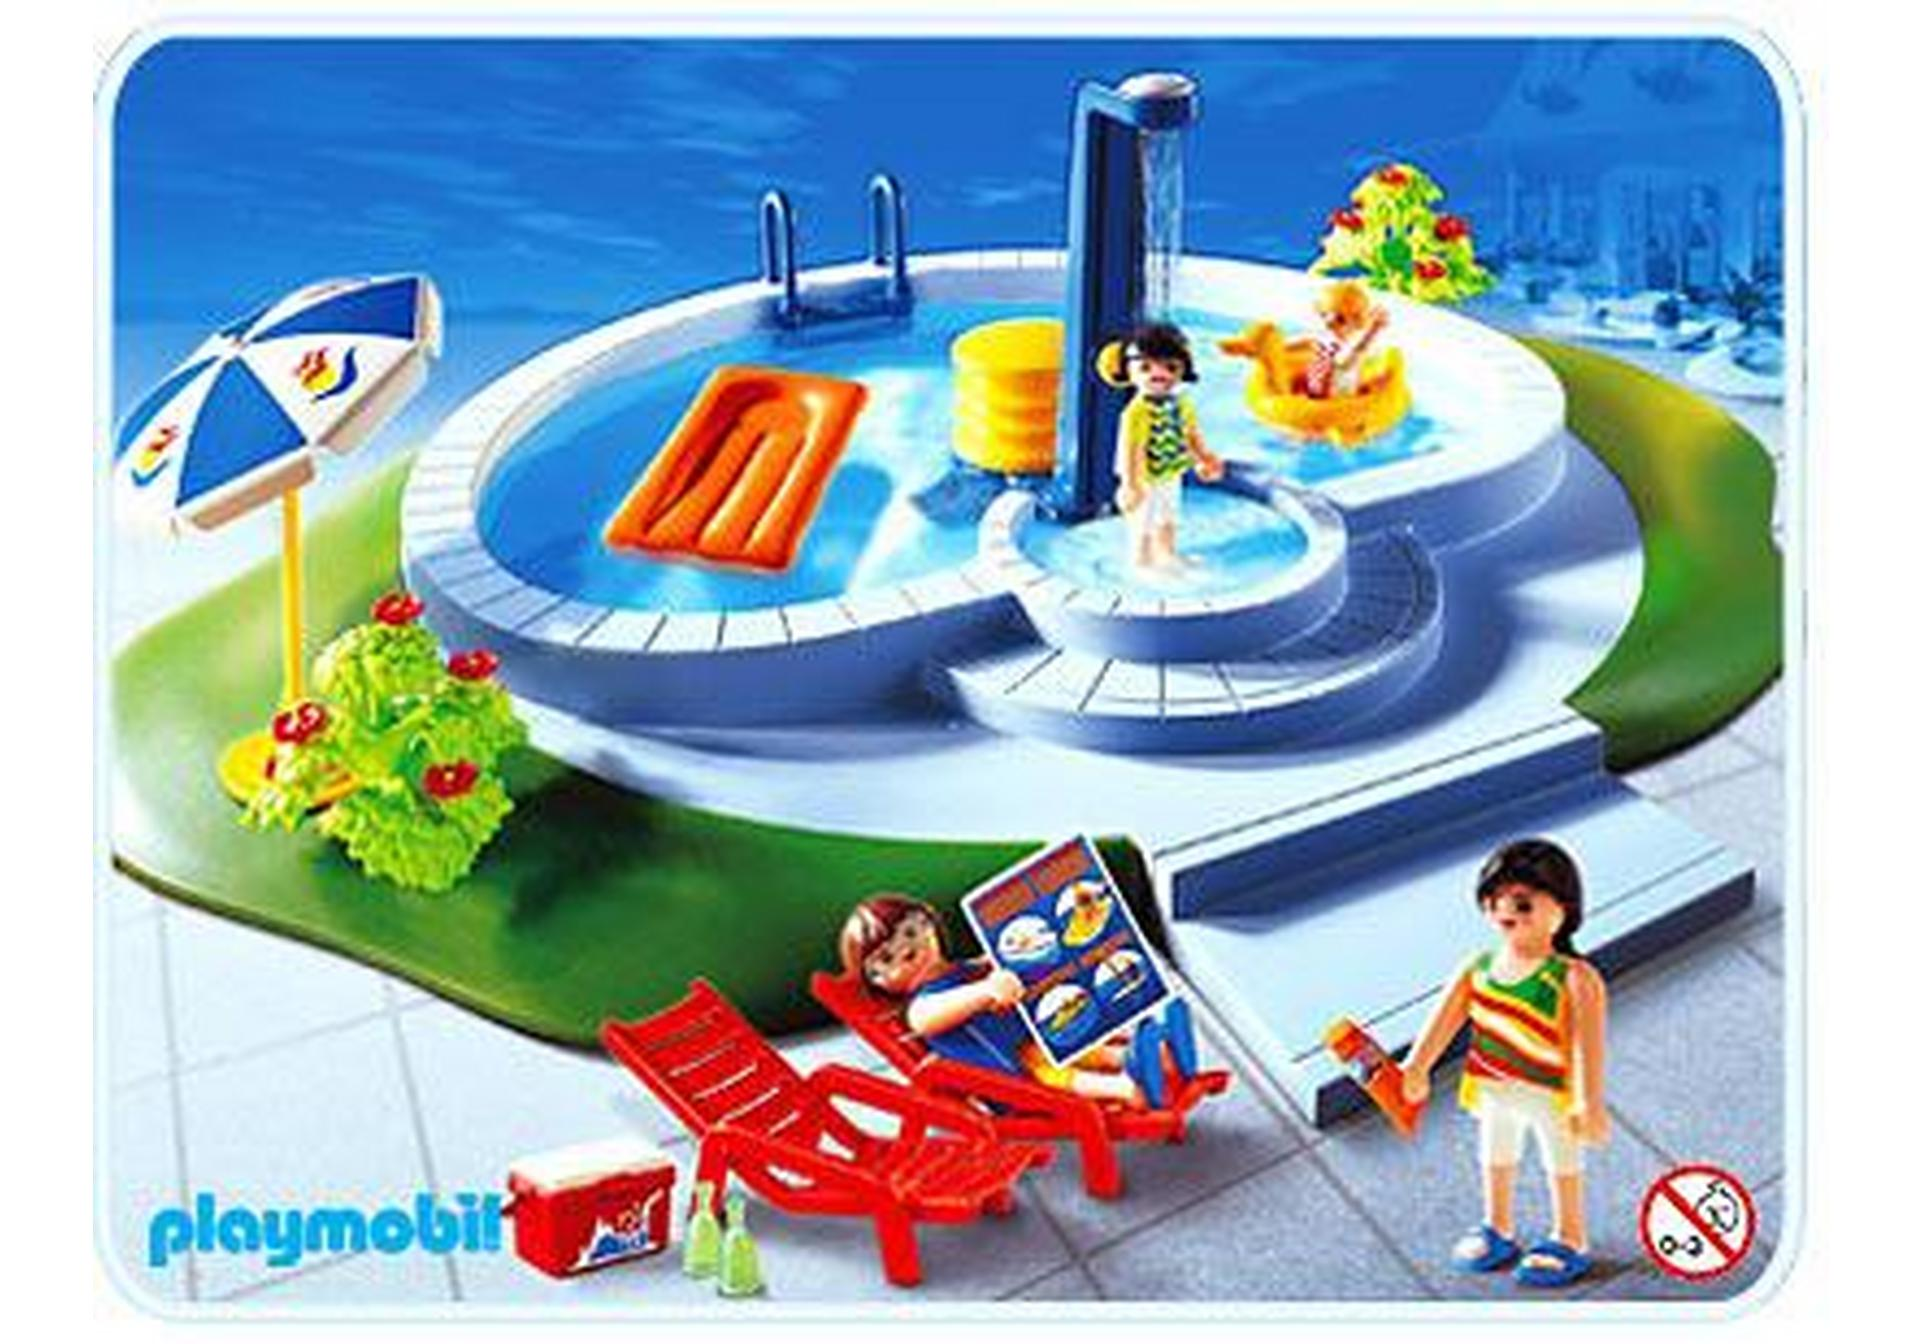 swimmingpool 3205 b playmobil